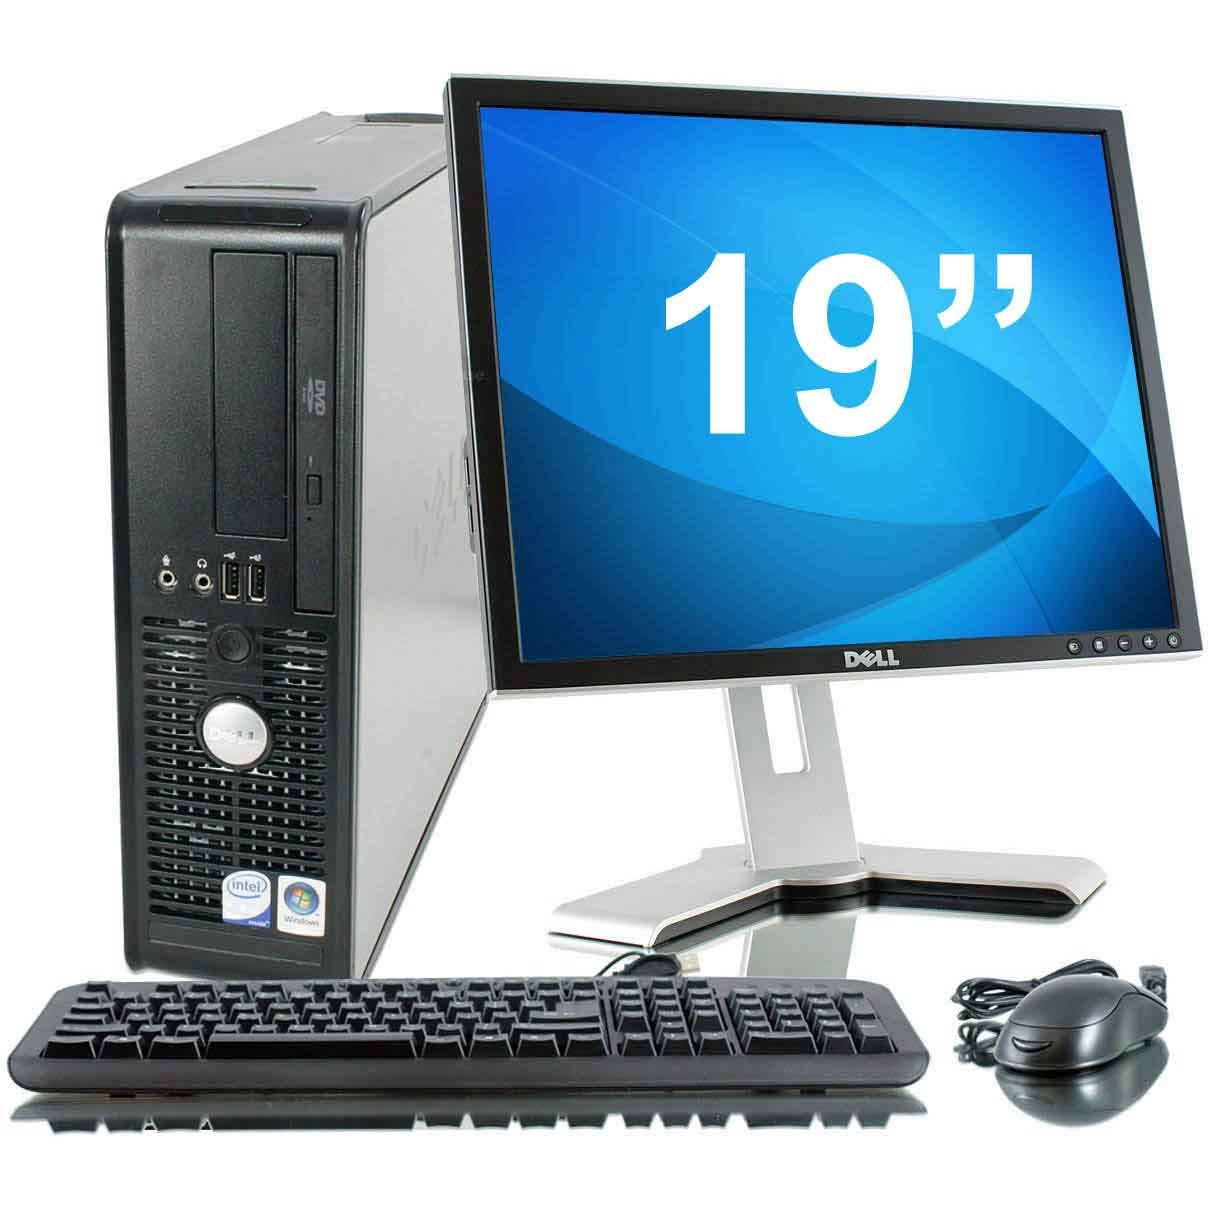 PC BUREAU DELL OPTIPLEX GX755 SFF + Ecran TFT 19""